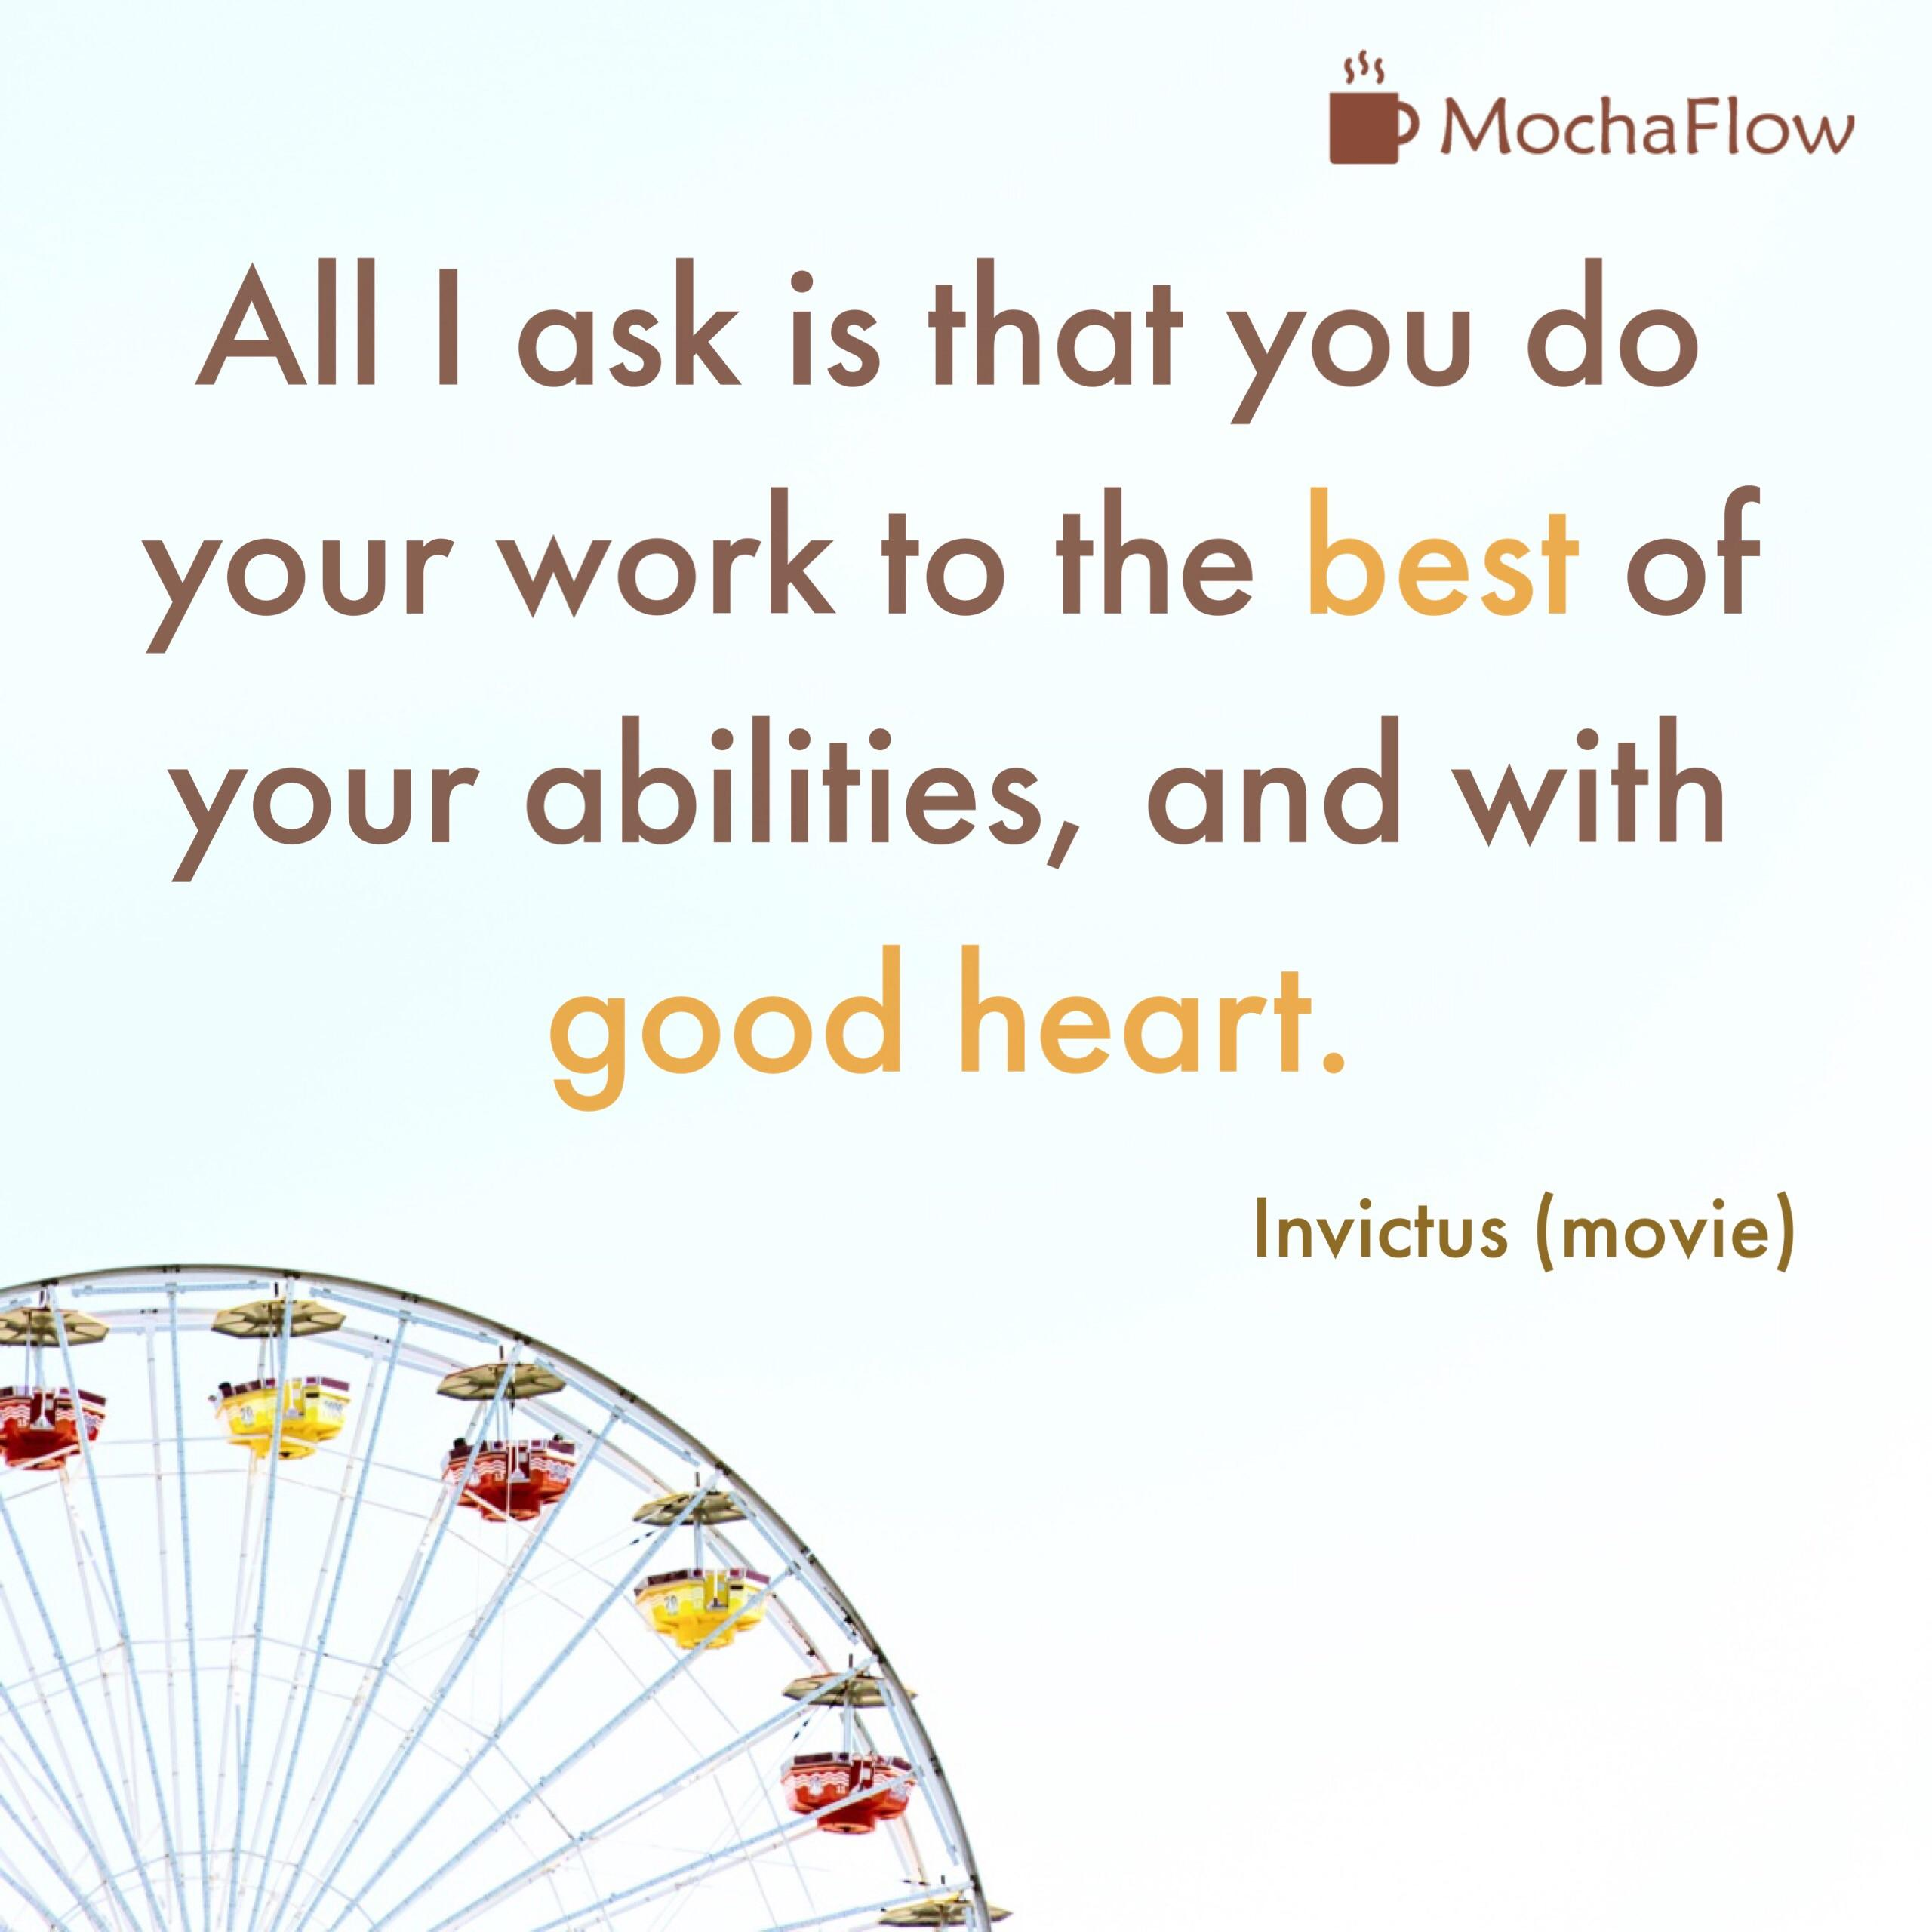 i Mocha Flow All | ask is that you do your work to the best of your abilities, and with good heart. Invictus (movie) https://inspirational.ly